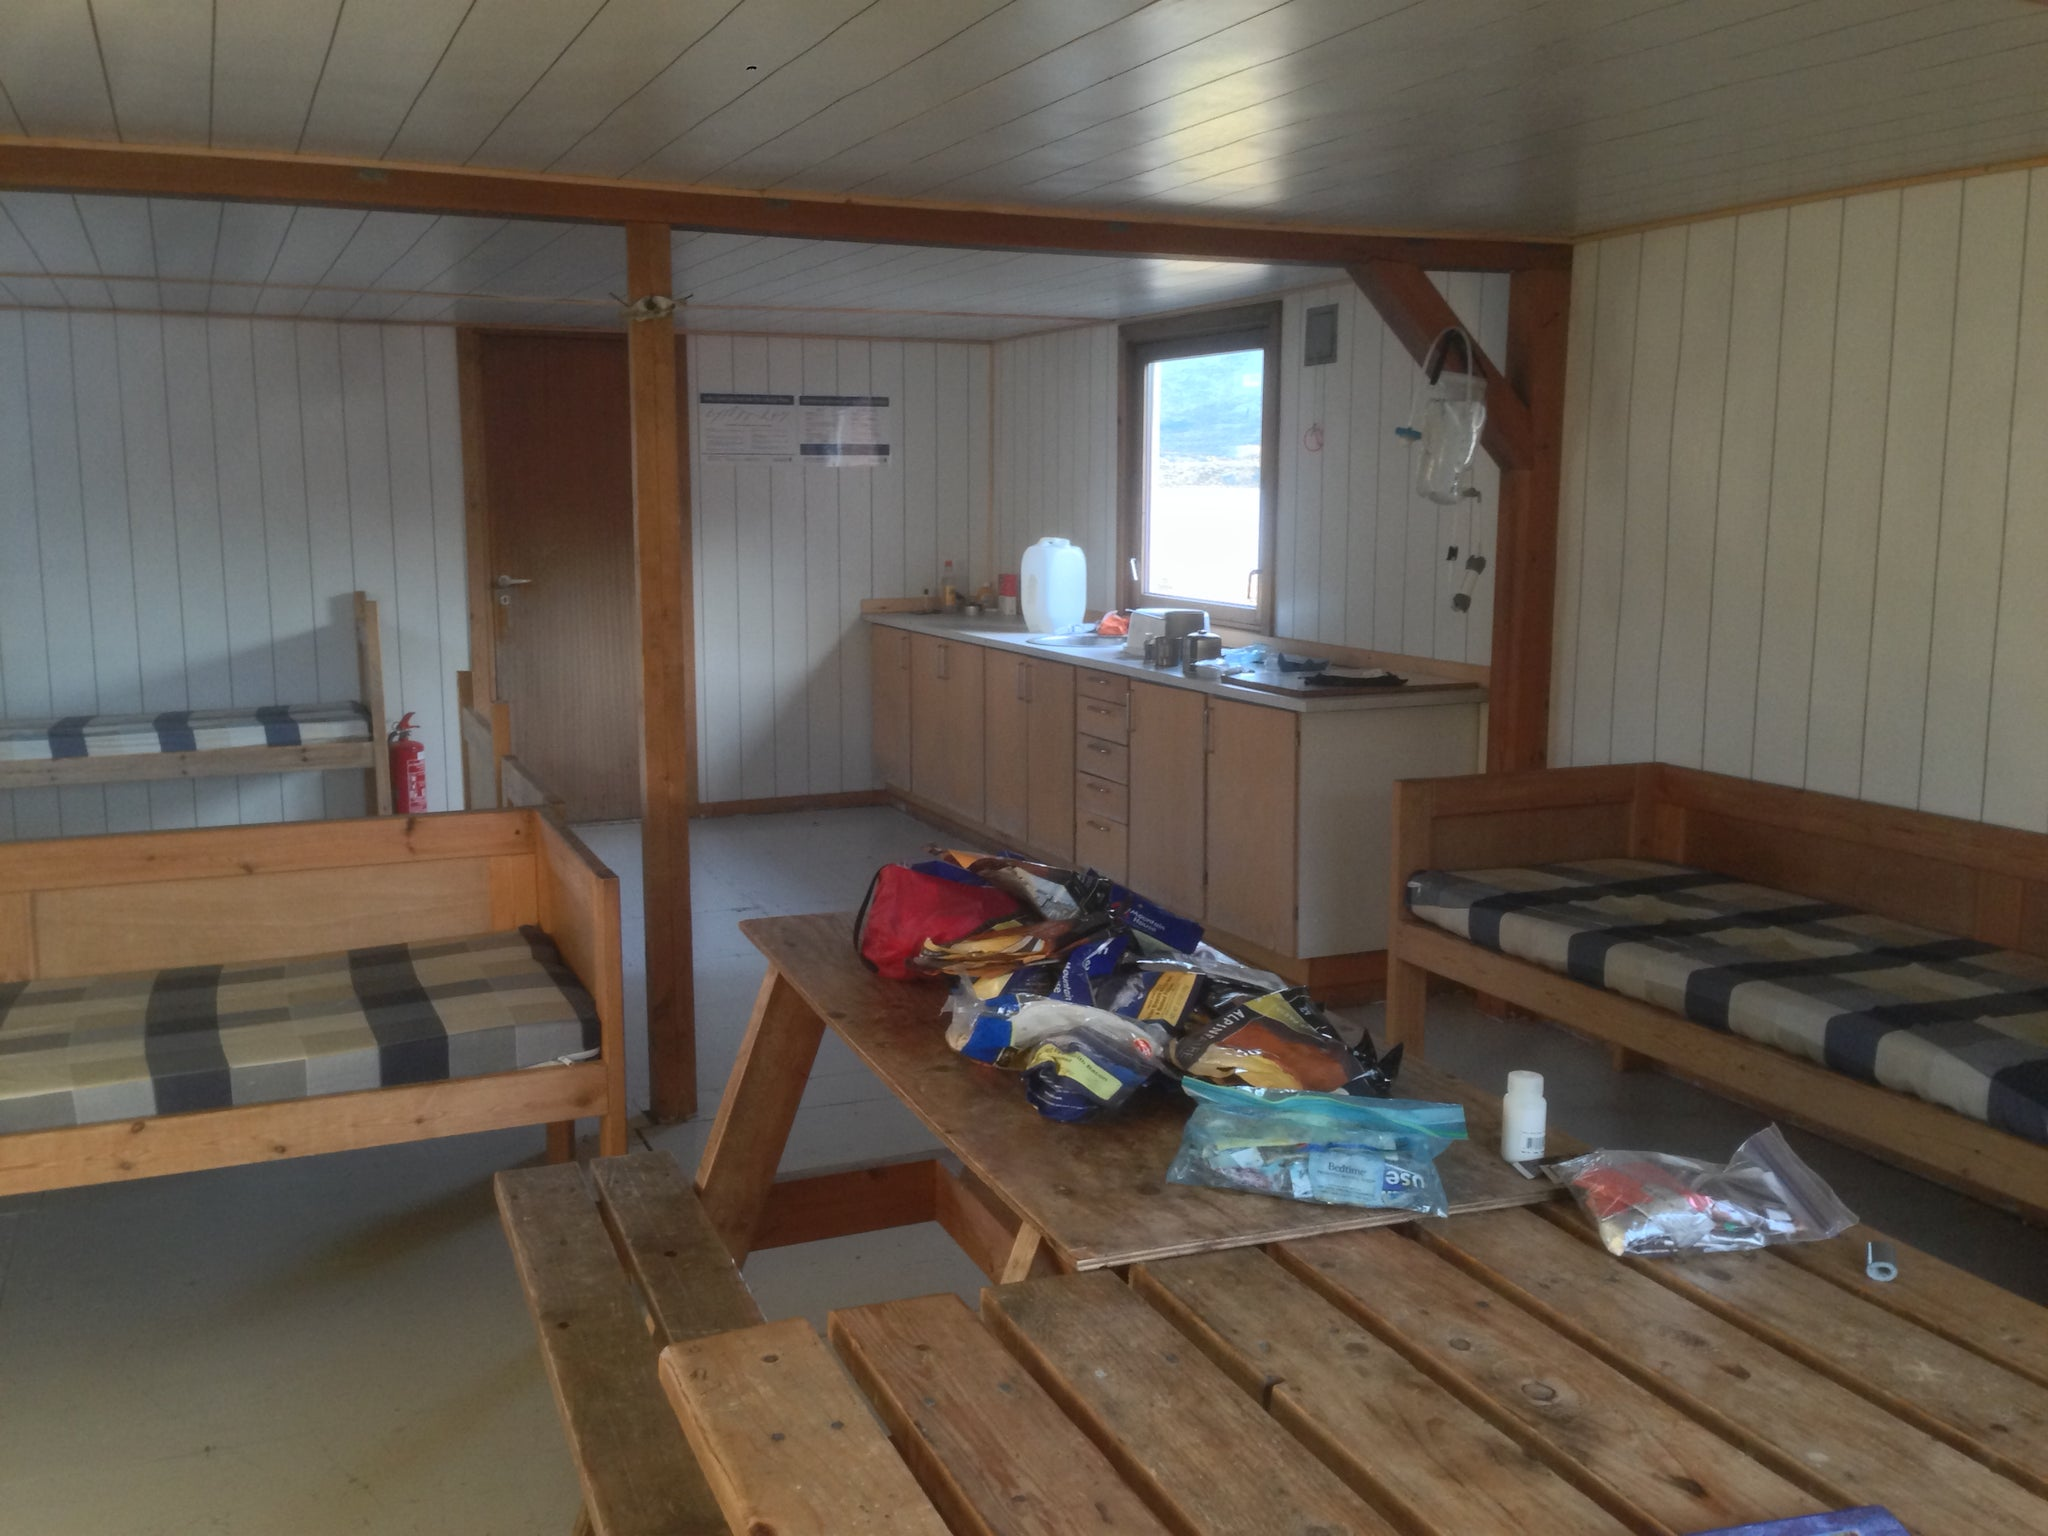 Inside the Canoe Center Hut, Arctic Circle Trail, Greenland